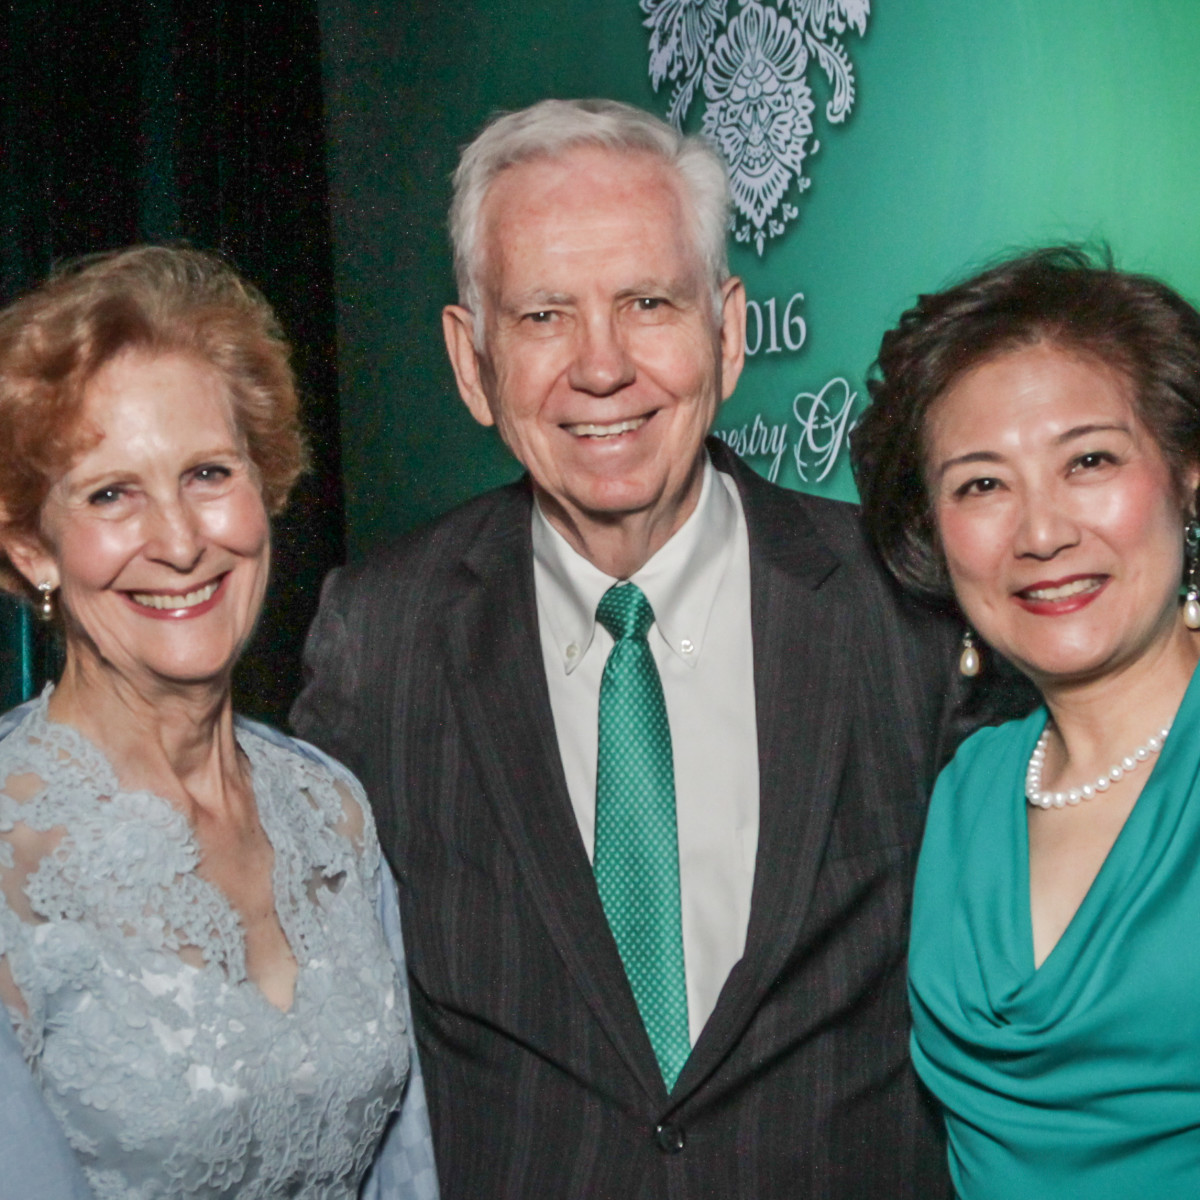 Tapestry gala, May 2016, Susan Baker, Charles Foster, Lily foster